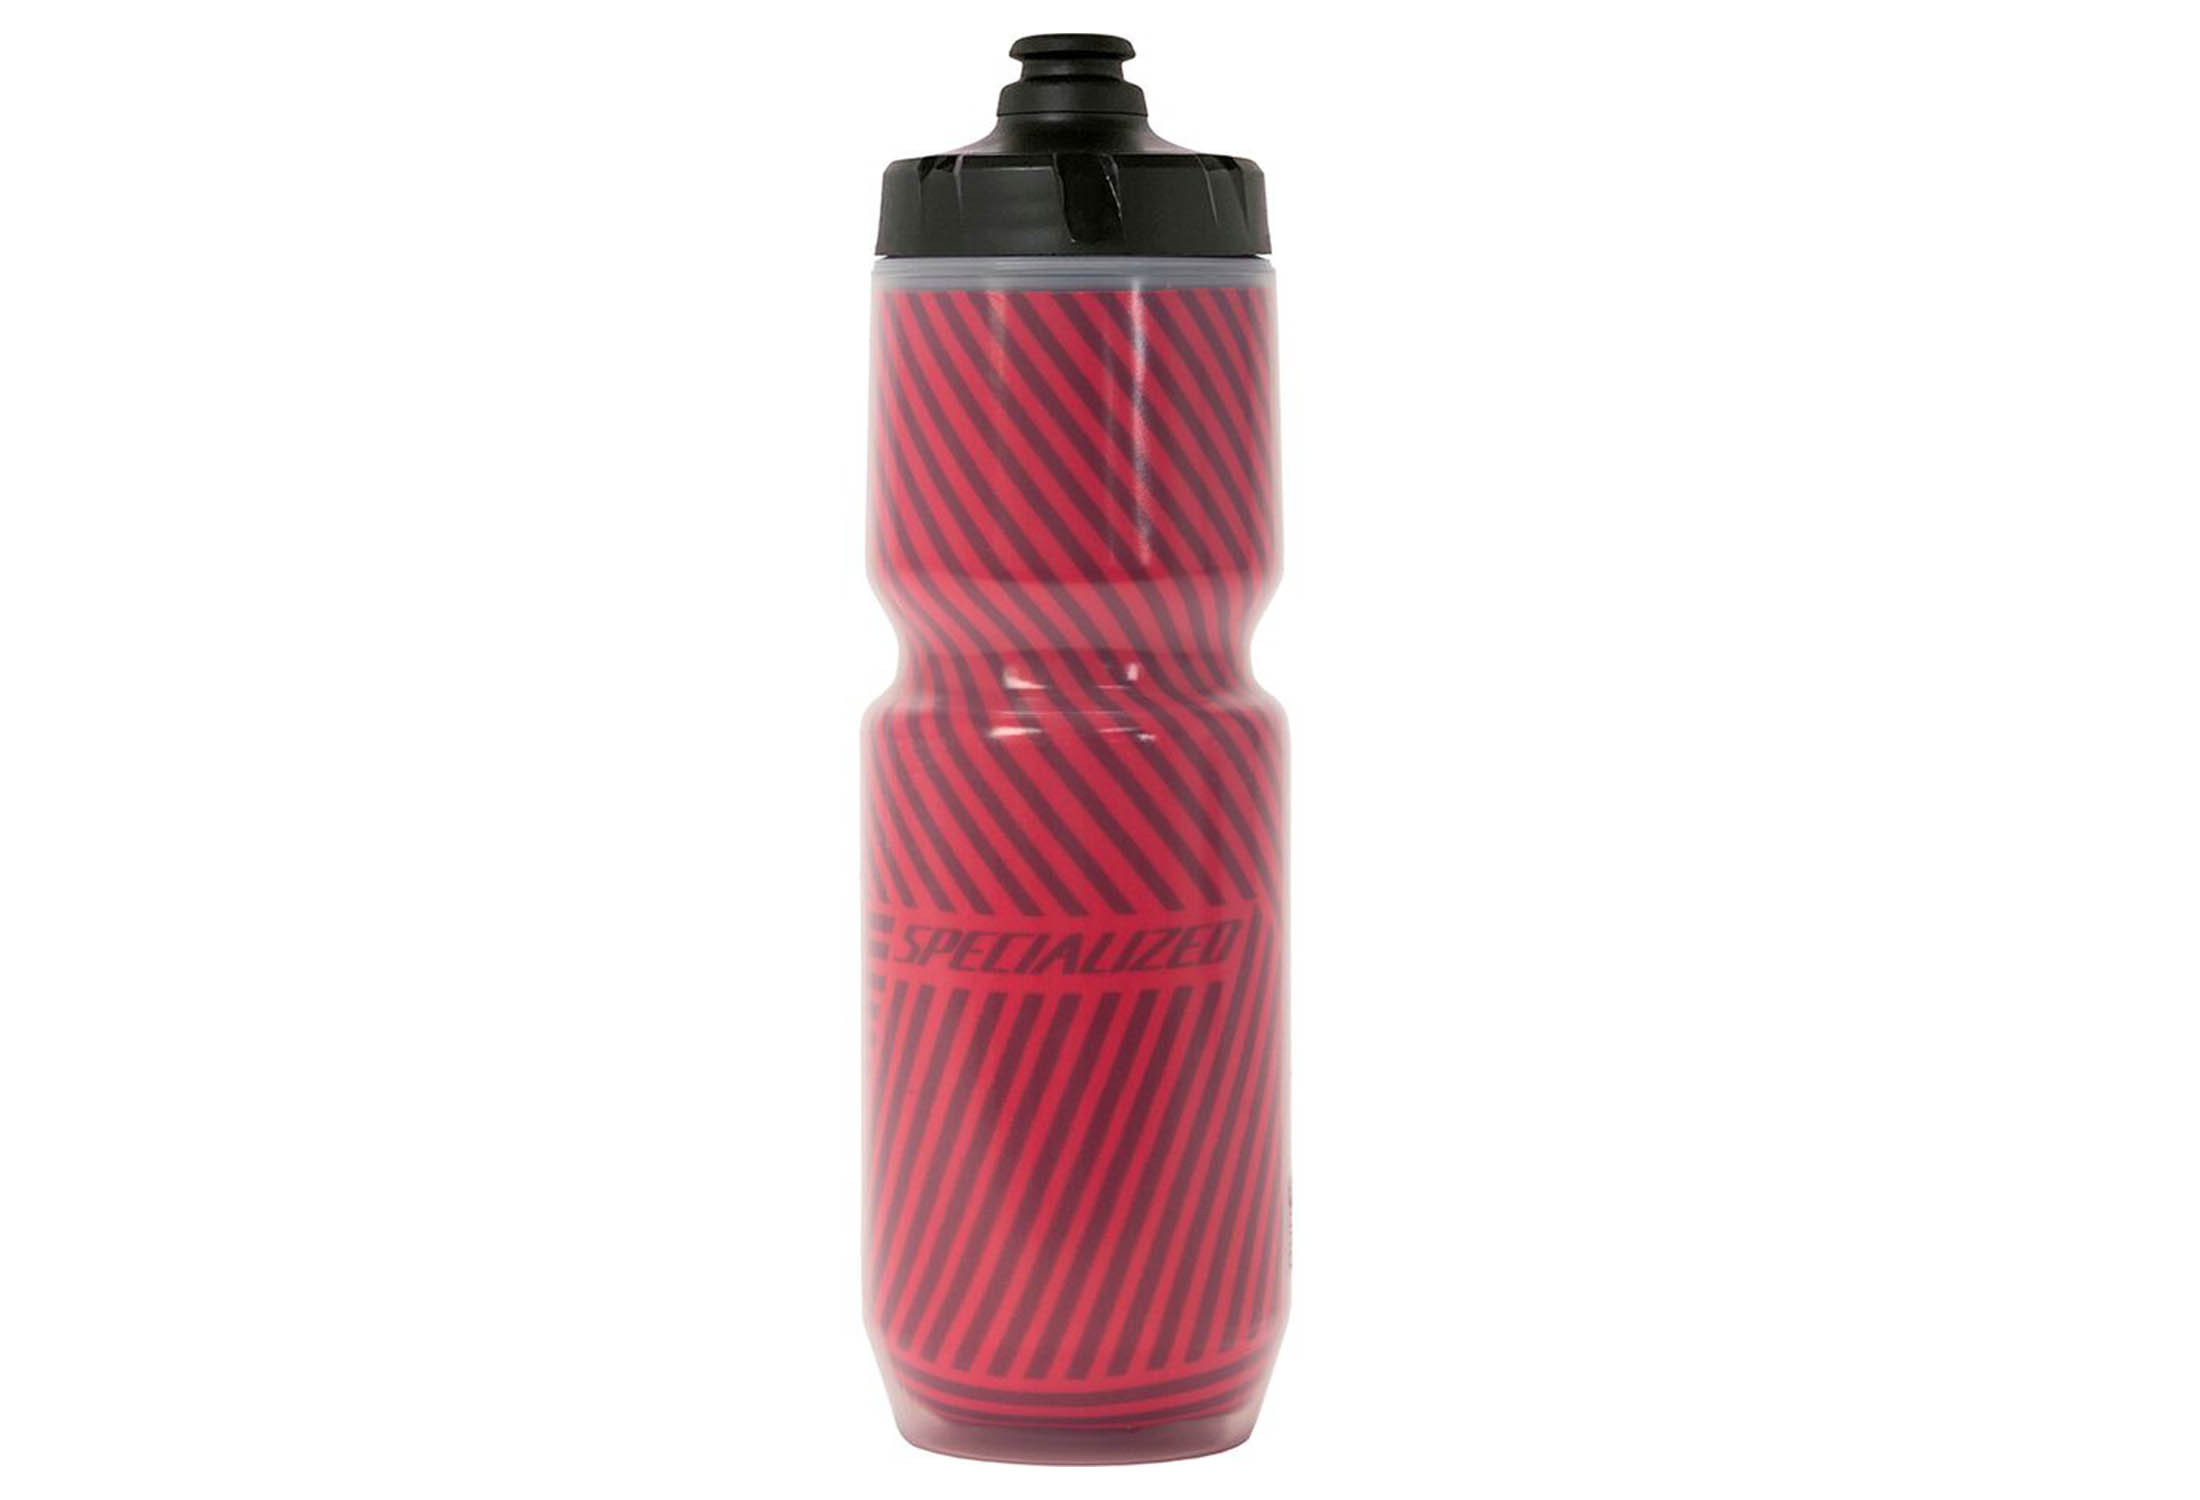 specialized chromatek bottle